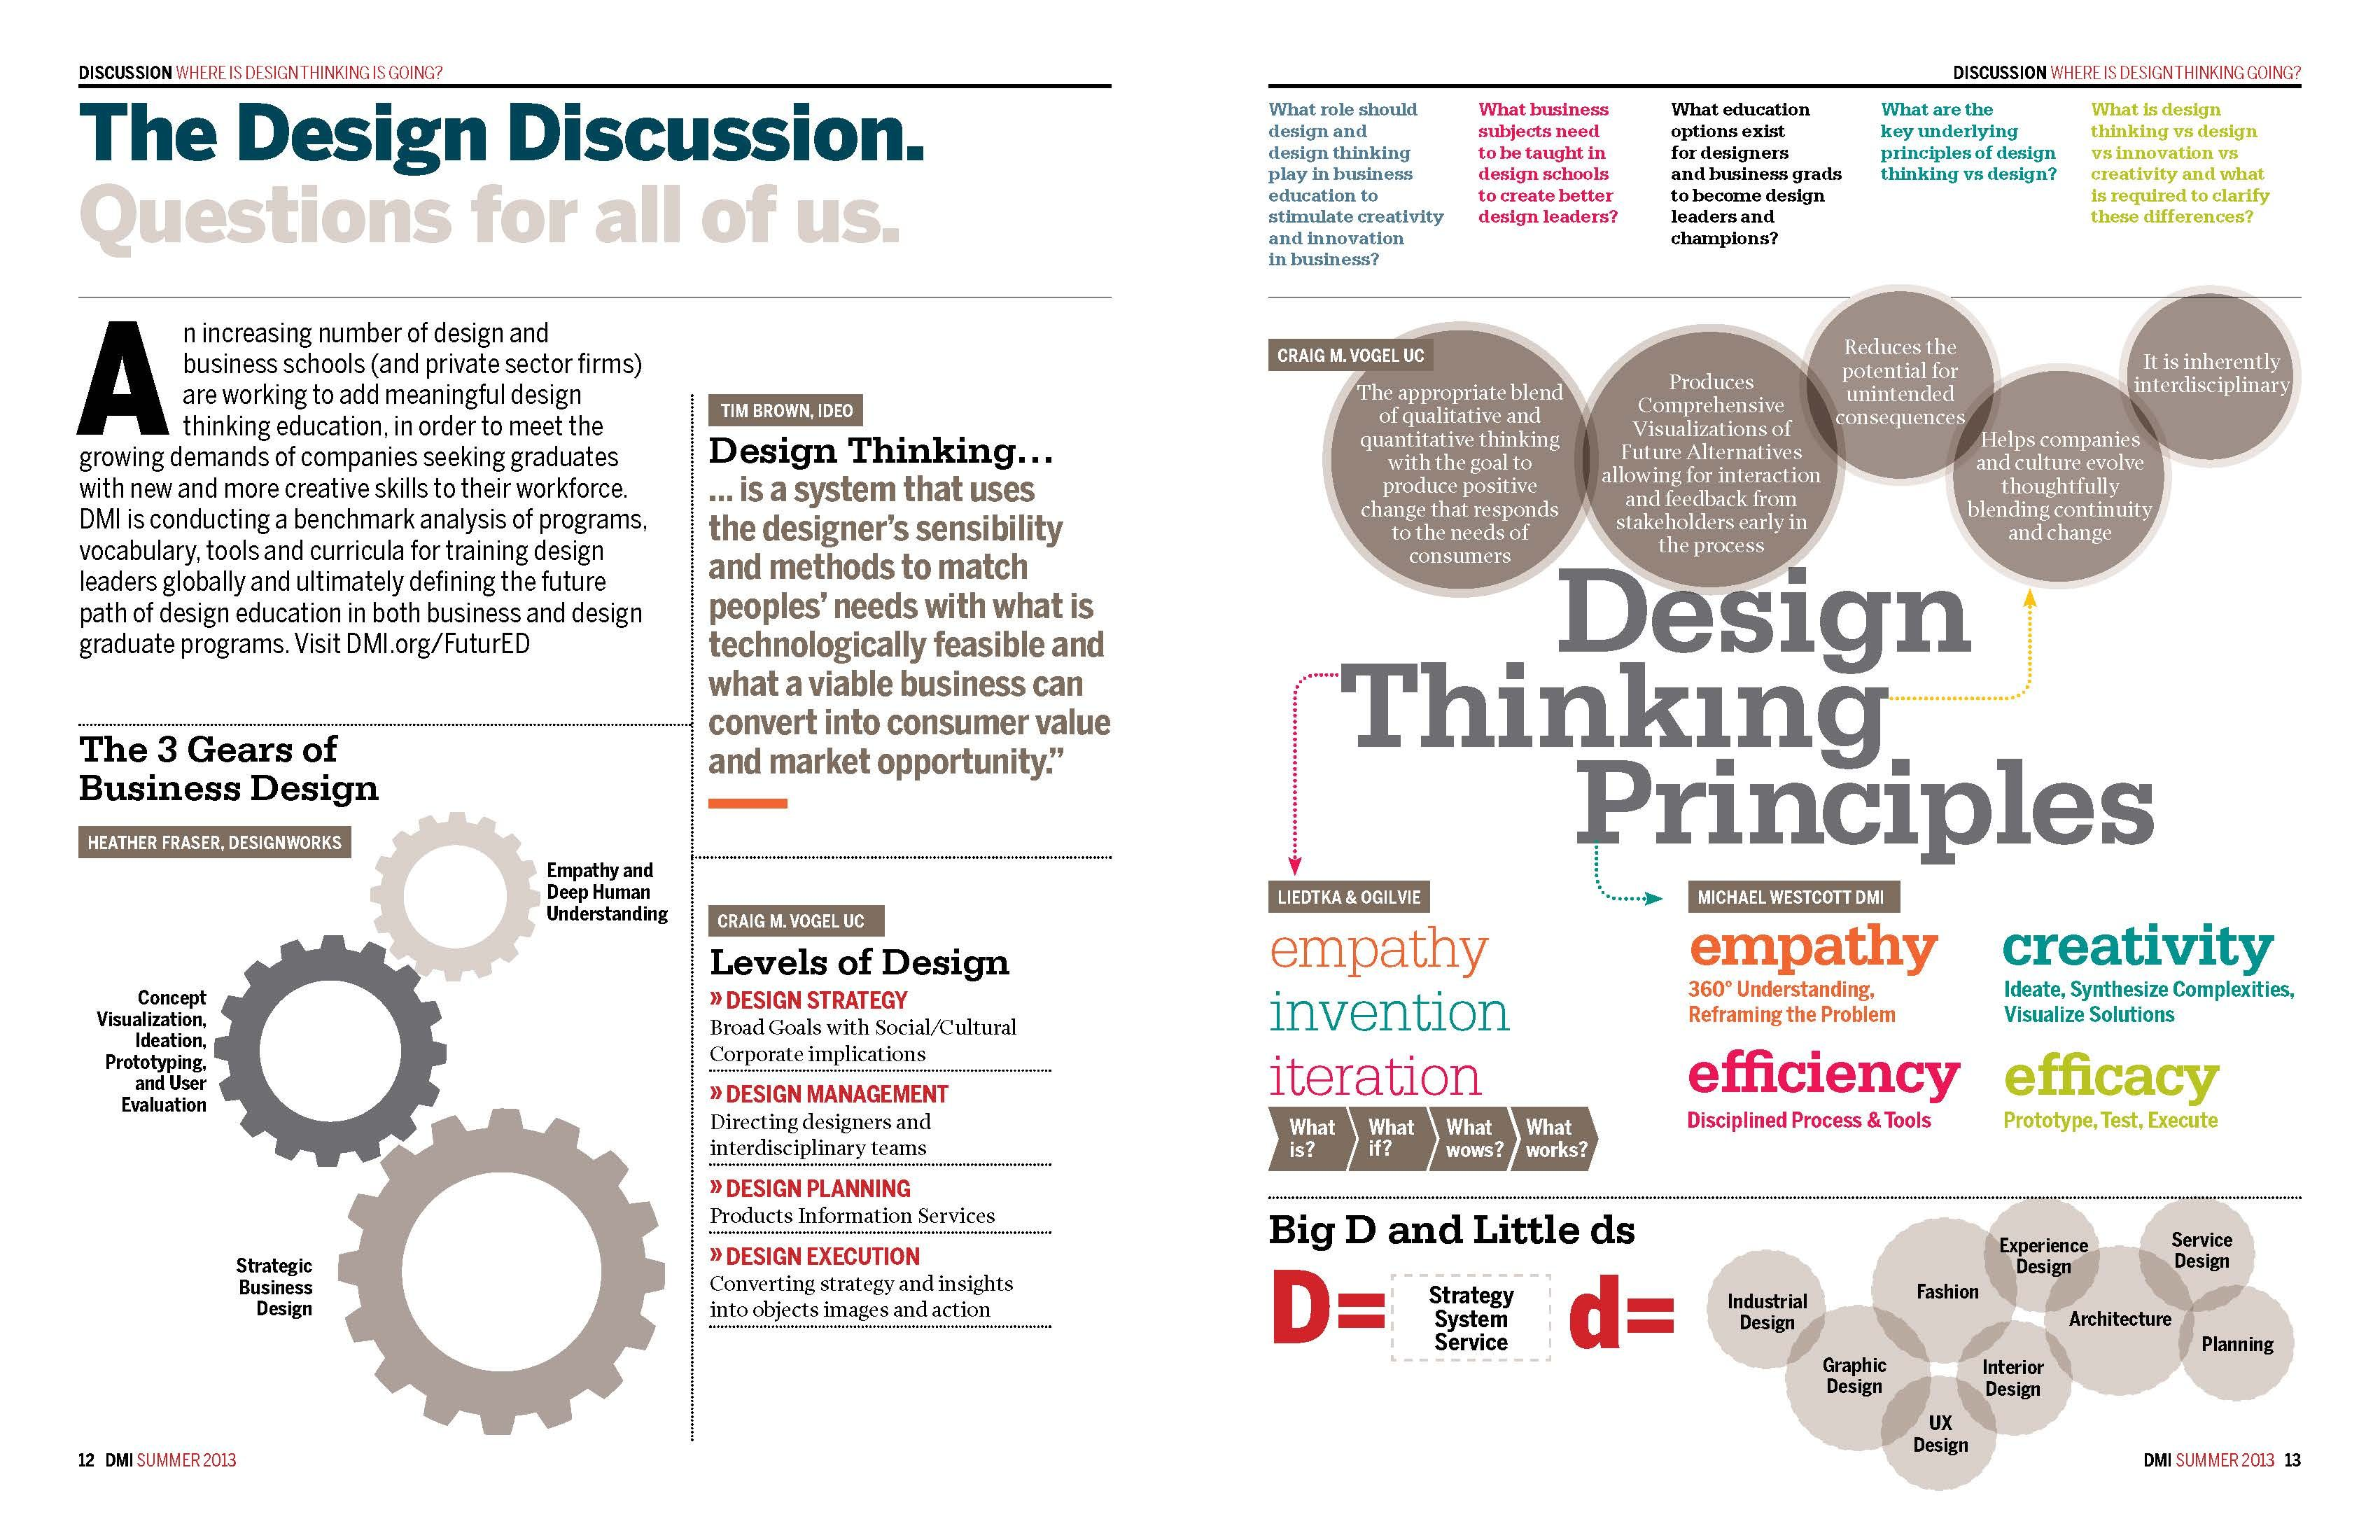 The Design Discussion: Questions for all of us by Tim Brown